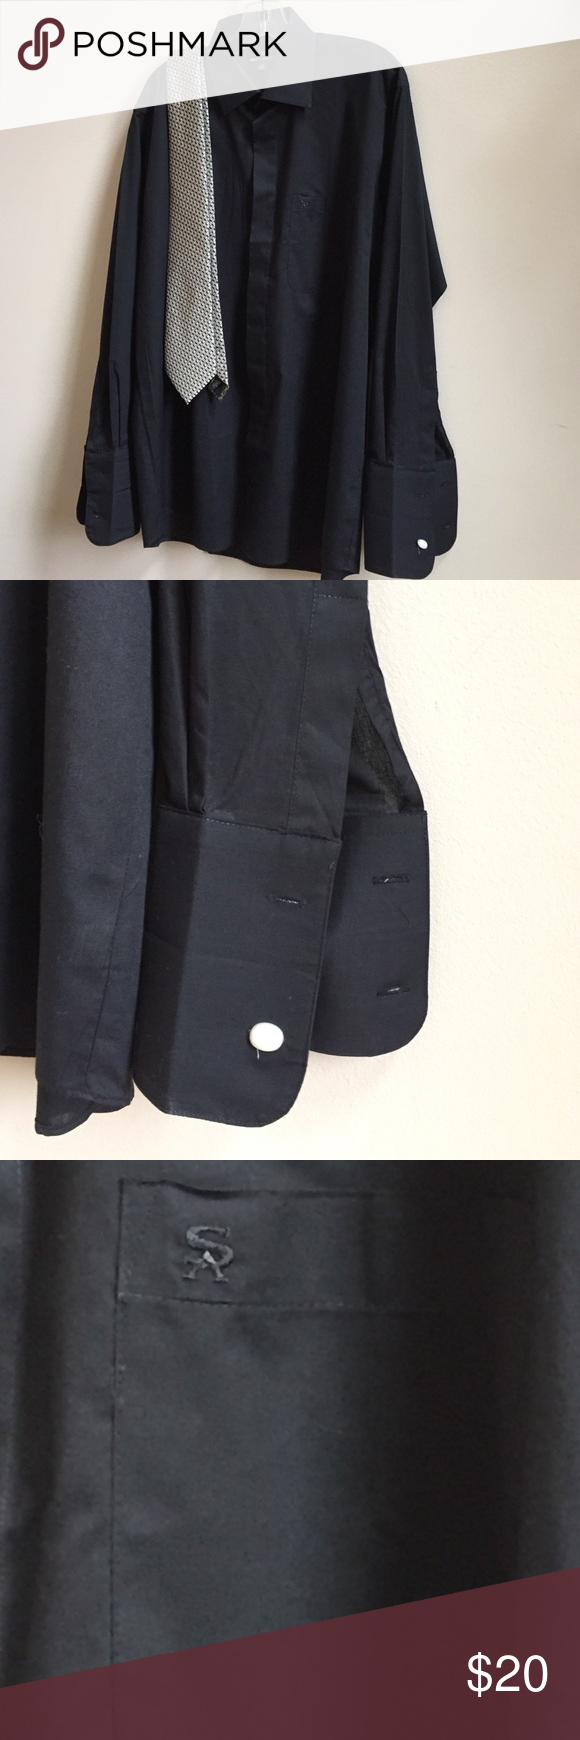 ❤️👔Stacy Adams Dress shirt with French cuffs. Black Stacy Adams dress shirt with French cuffs. Neck is 16 and sleaze are 32–33. Logo on pocket.  60% cotton 40% polyester. Never worn. Stacy Adams Shirts Dress Shirts